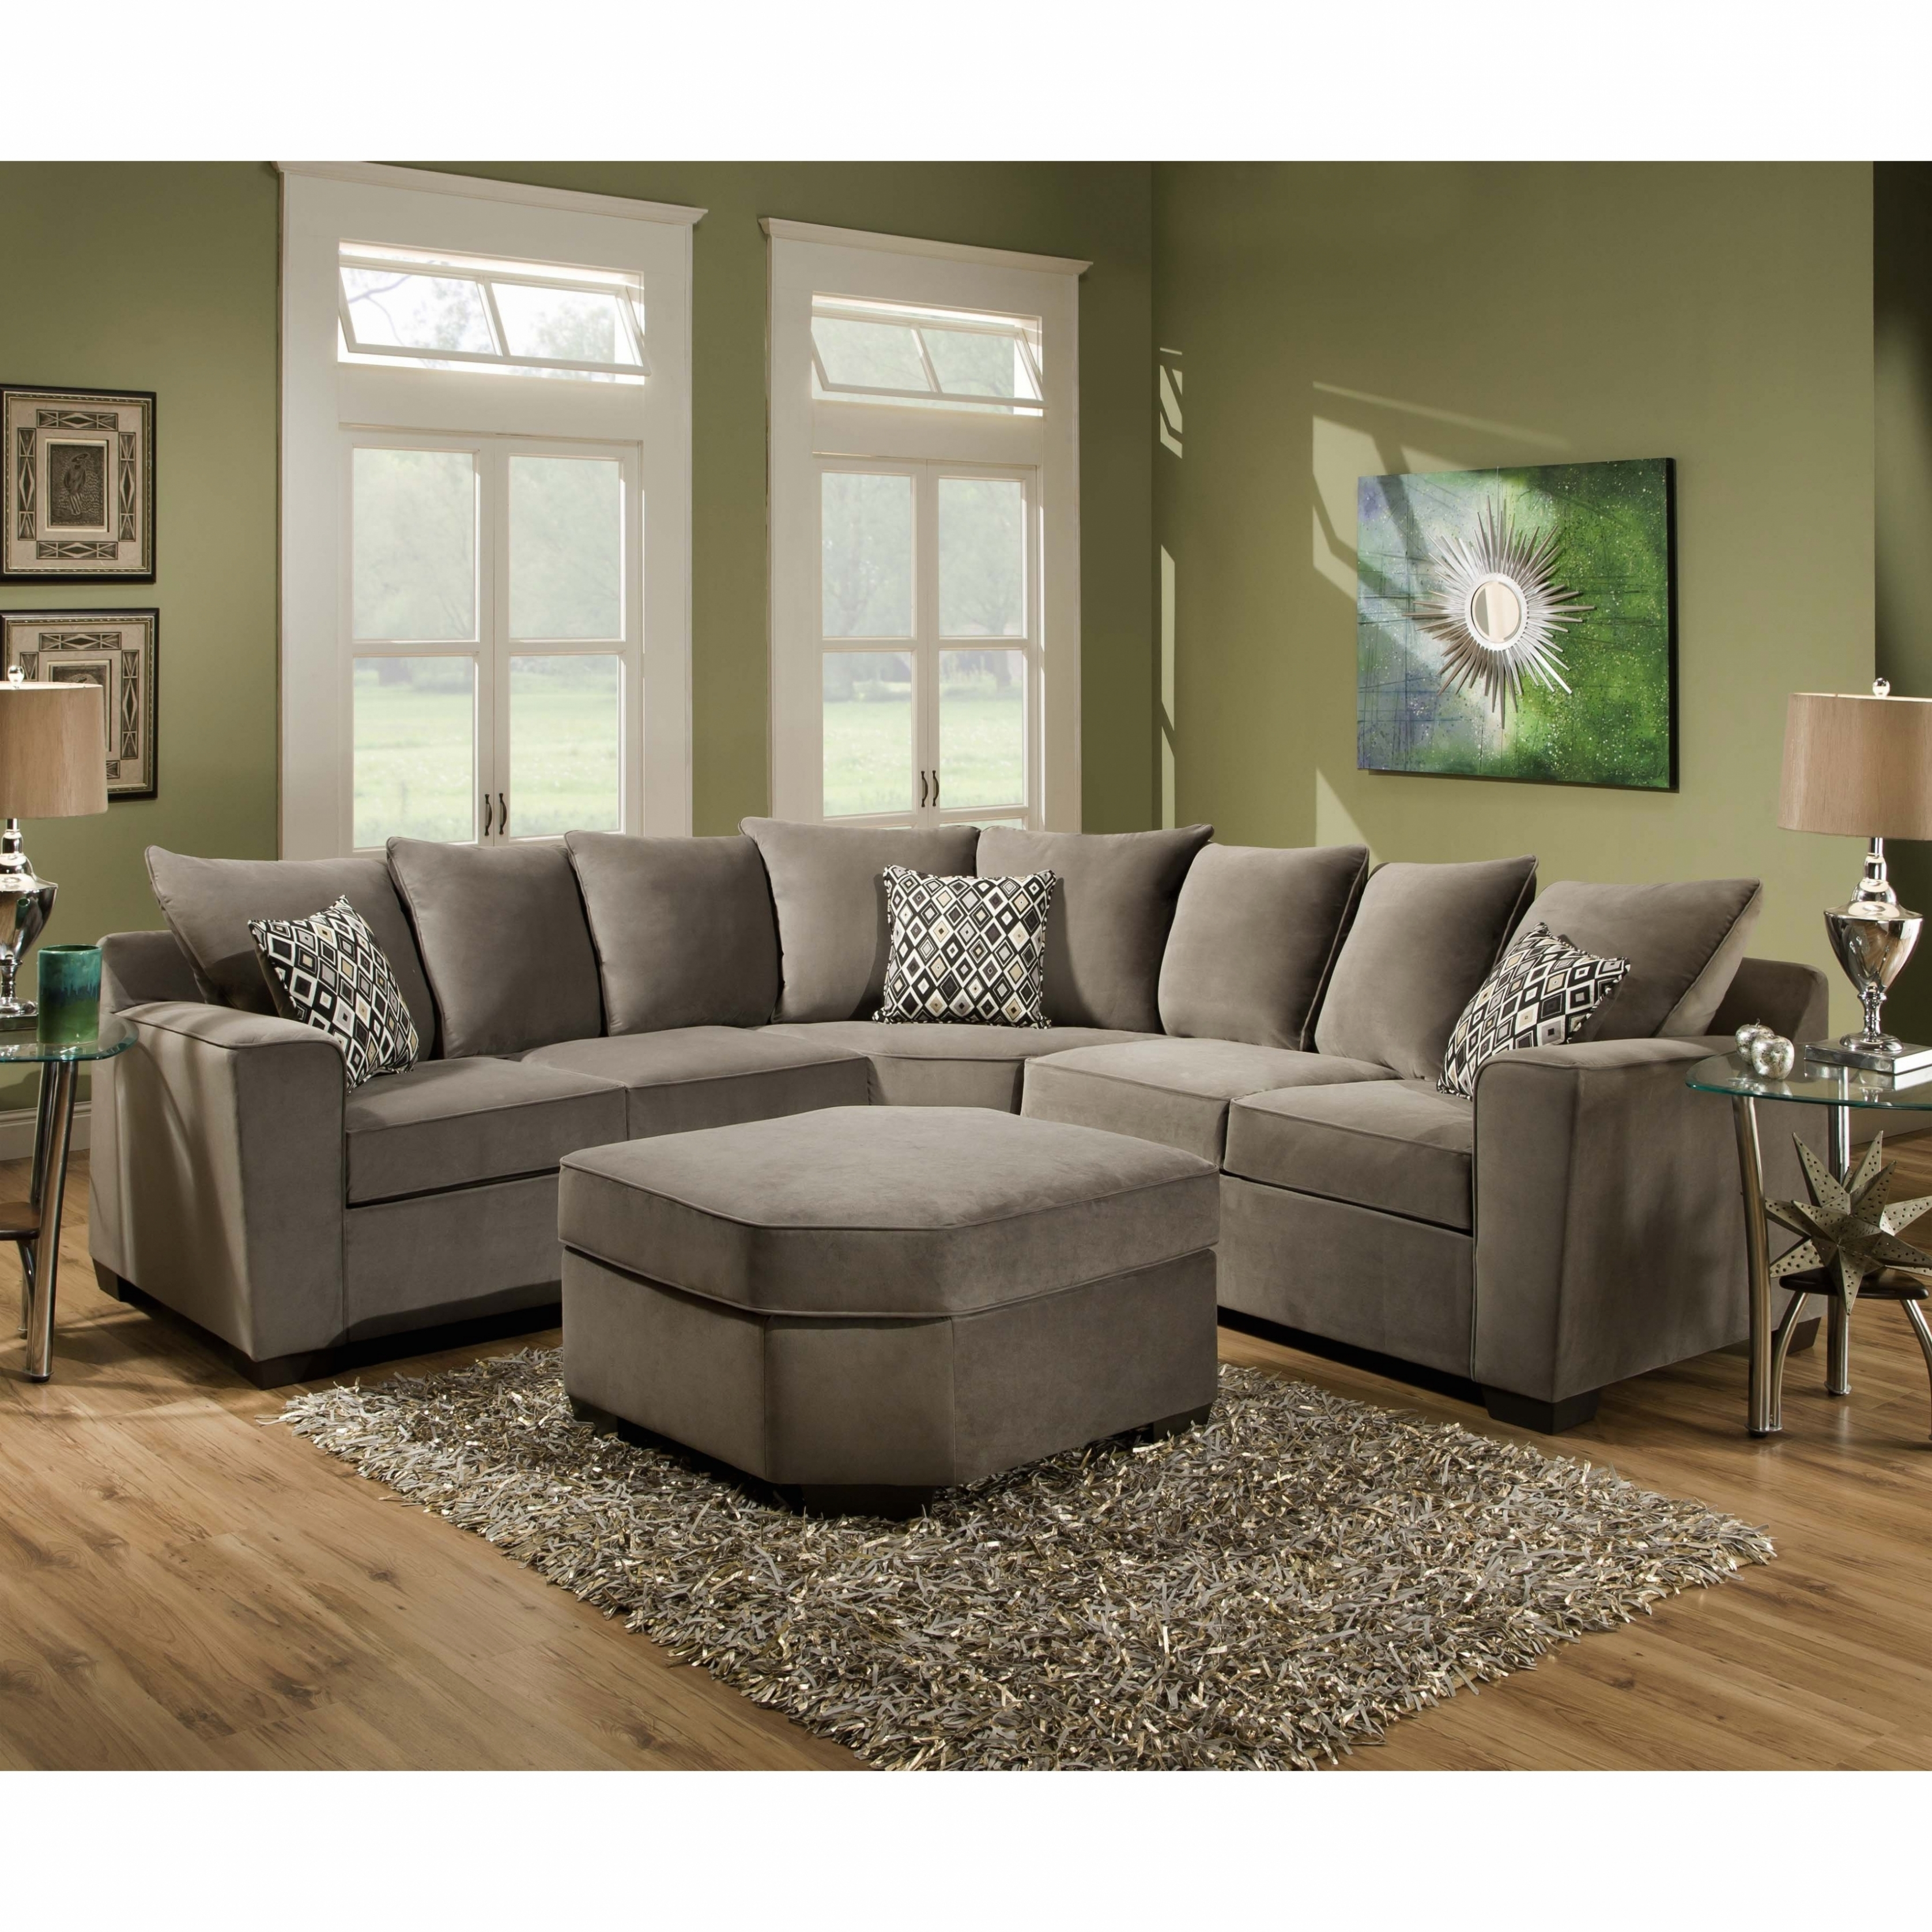 Fashionable Sofa: Havertys Sectional Sofas Nrhcares Within Lovely Havertys With Sectional Sofas At Havertys (View 5 of 20)